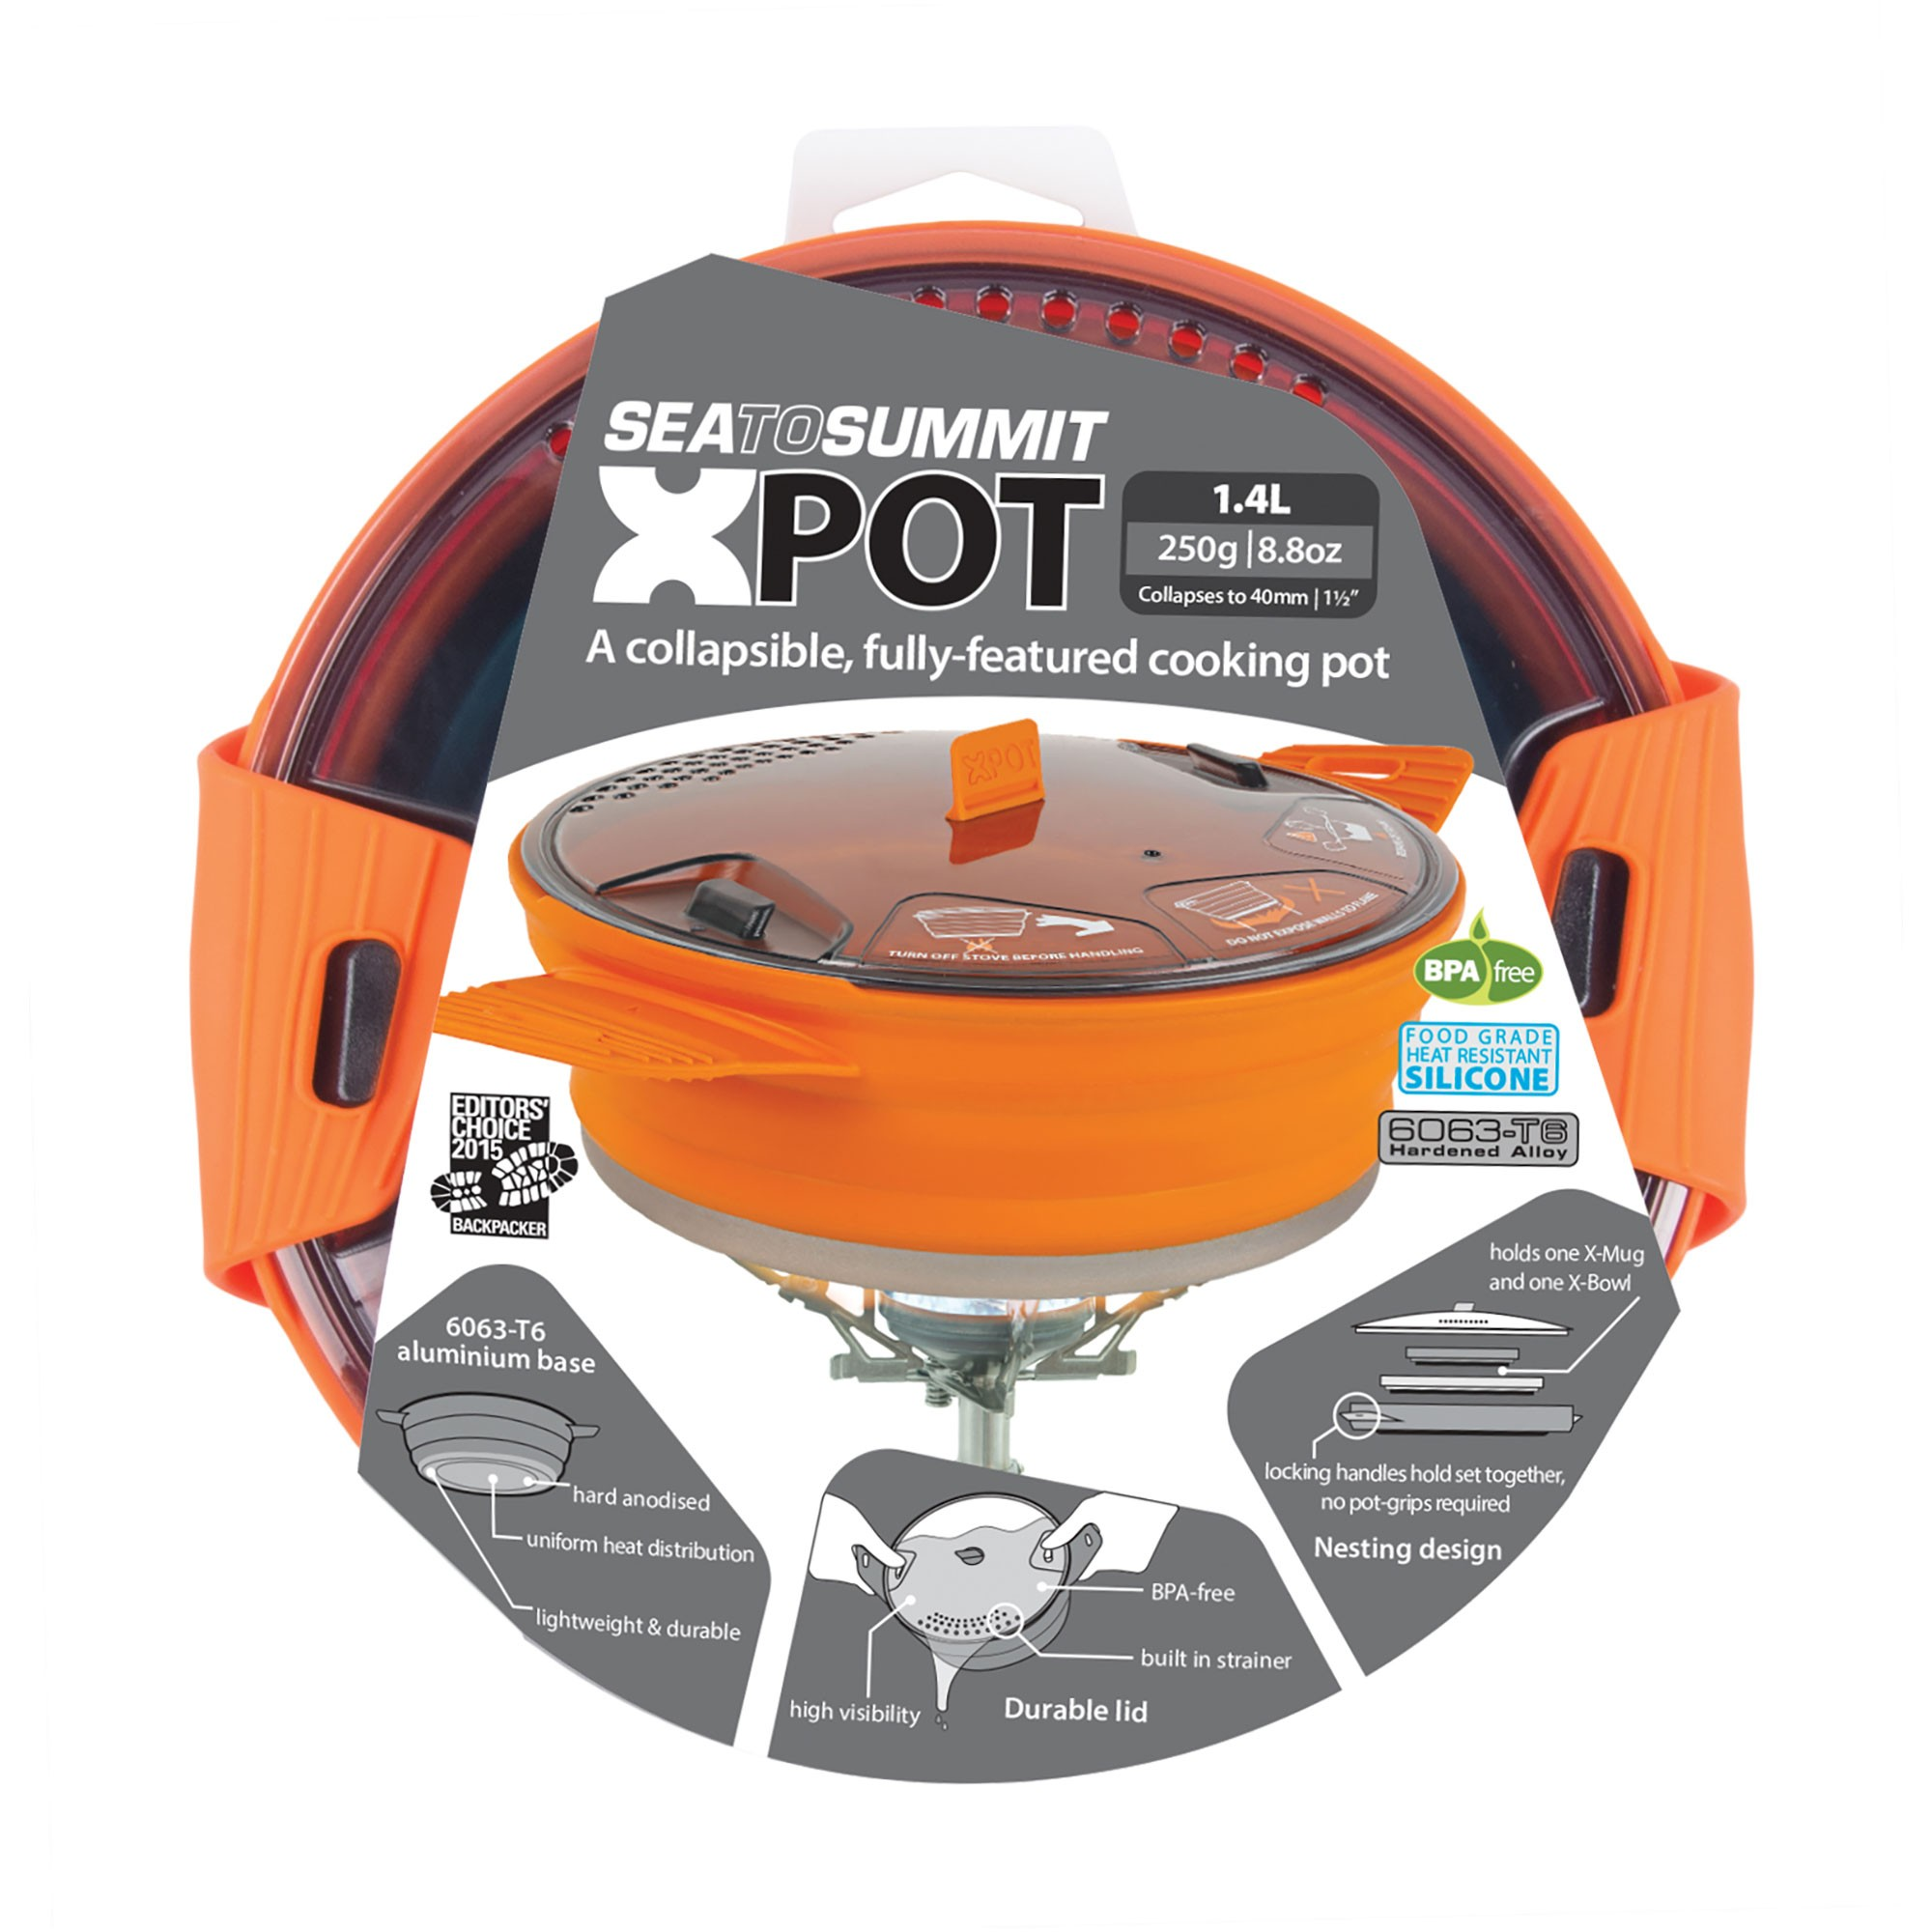 Sea to Summit X-Pot Orange 1.4L